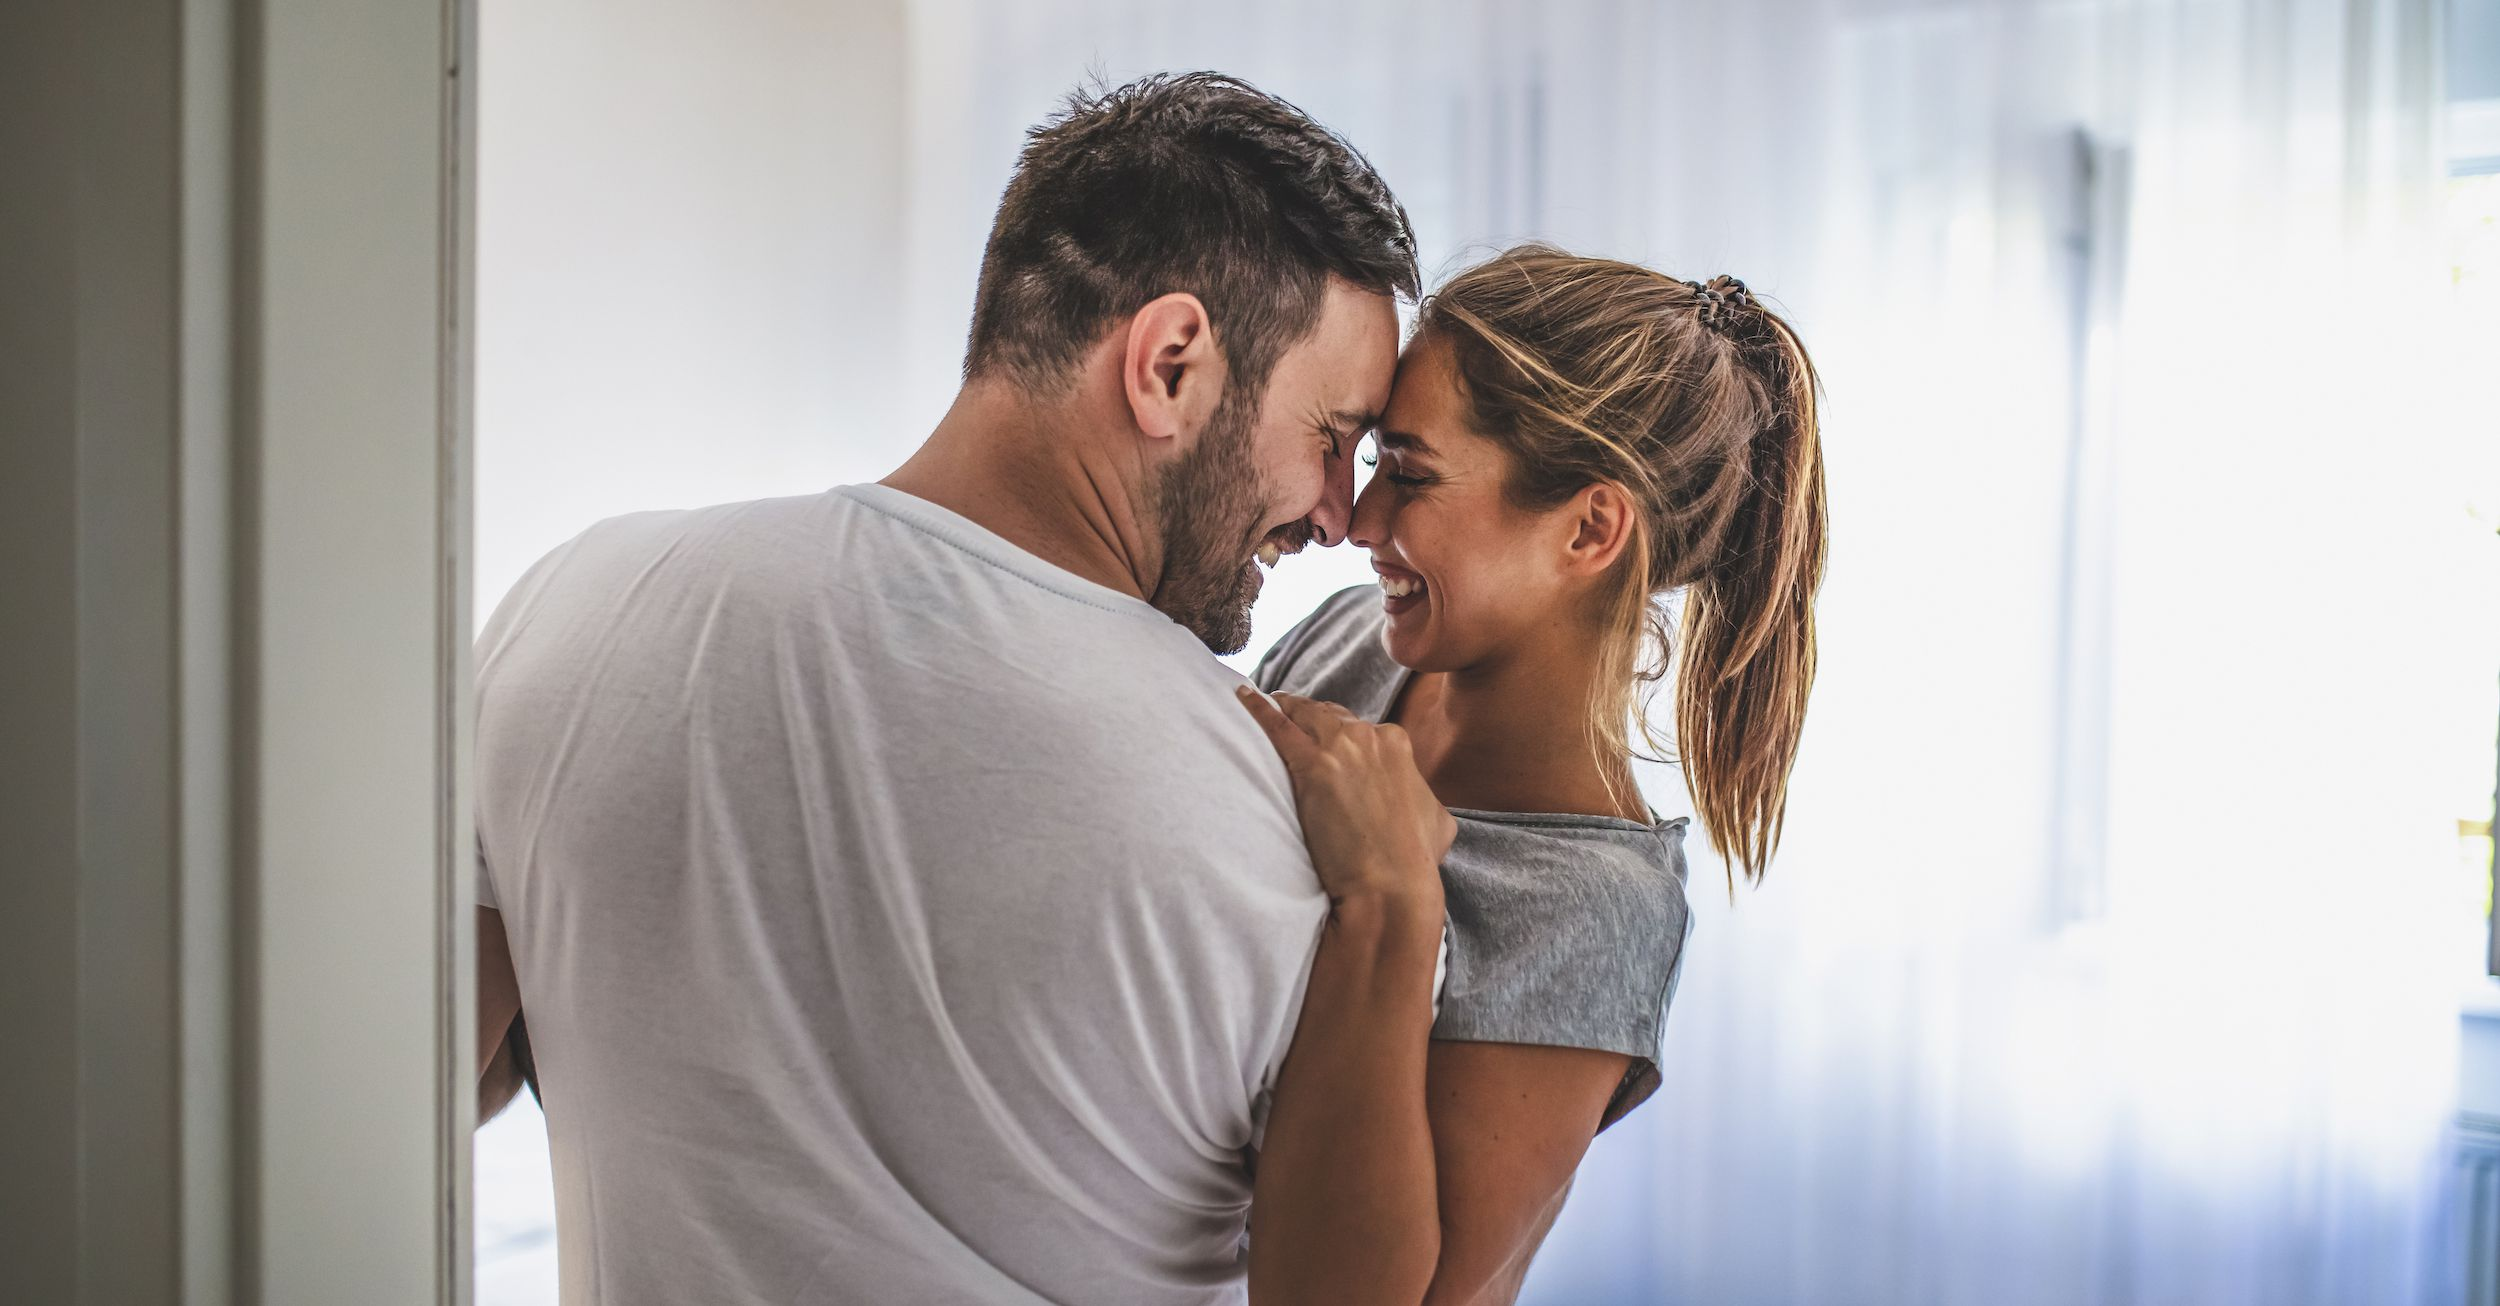 First time sex married experience